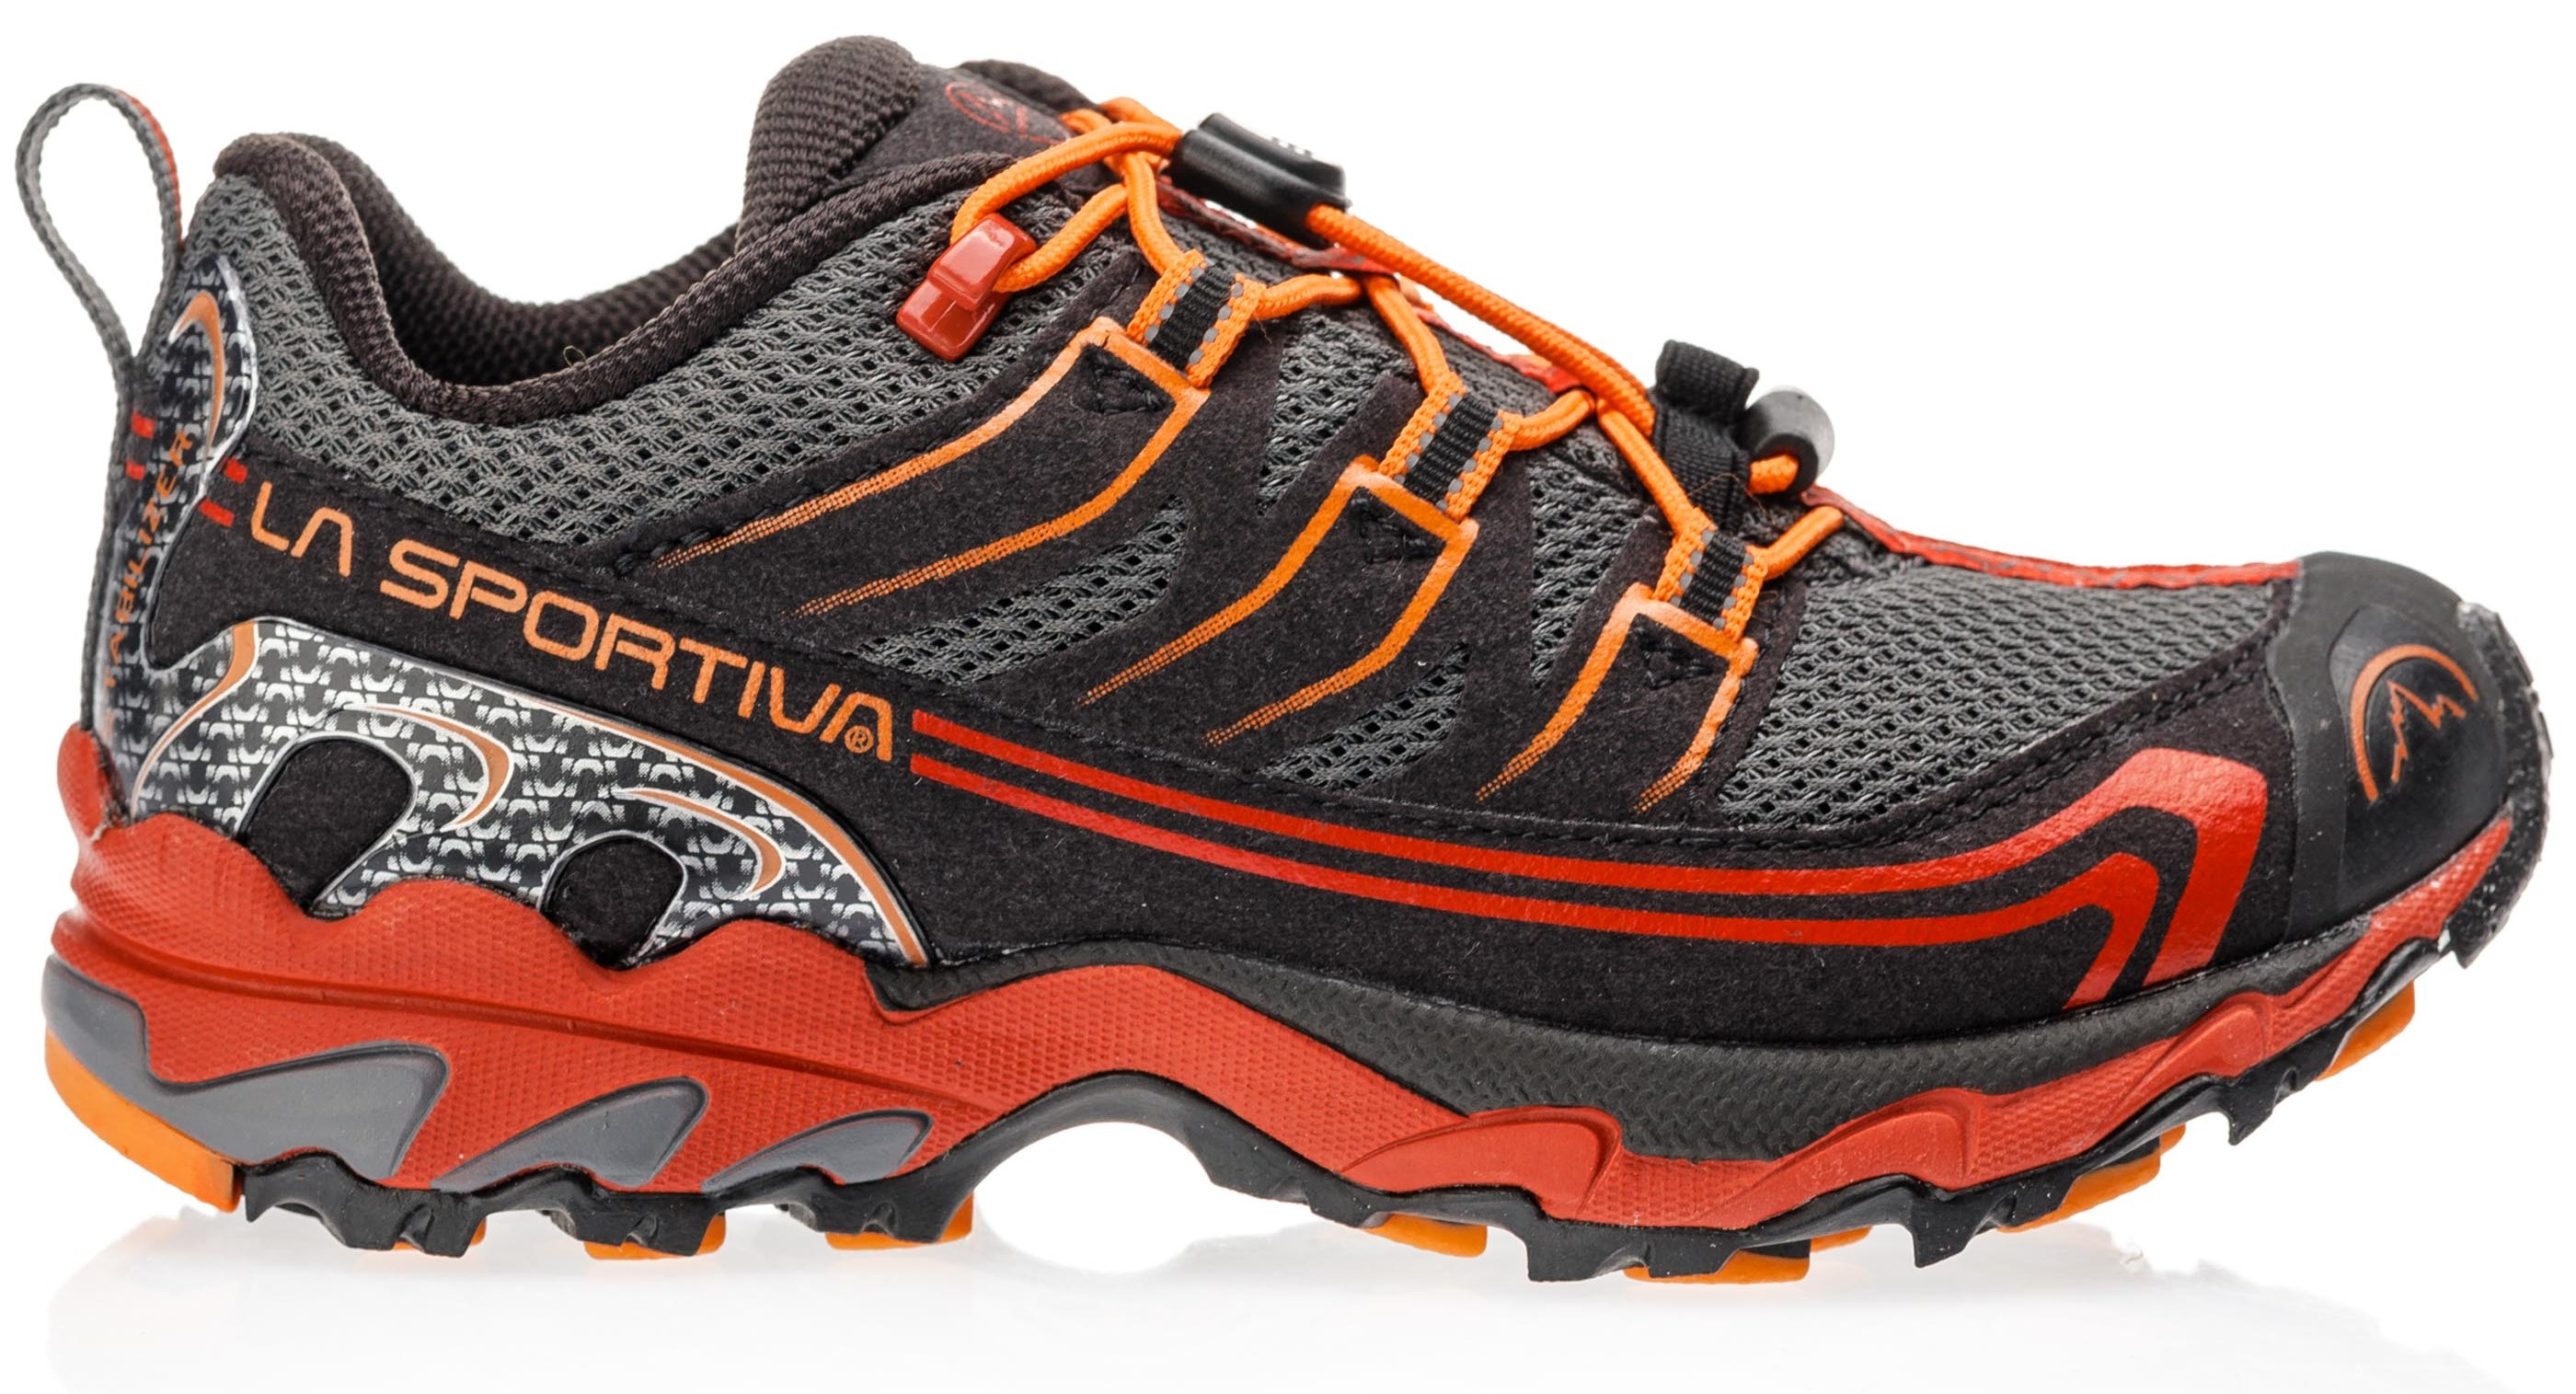 Ботинки детские La Sportiva Falkon Low Carbon/Flame - Фото 1 большая